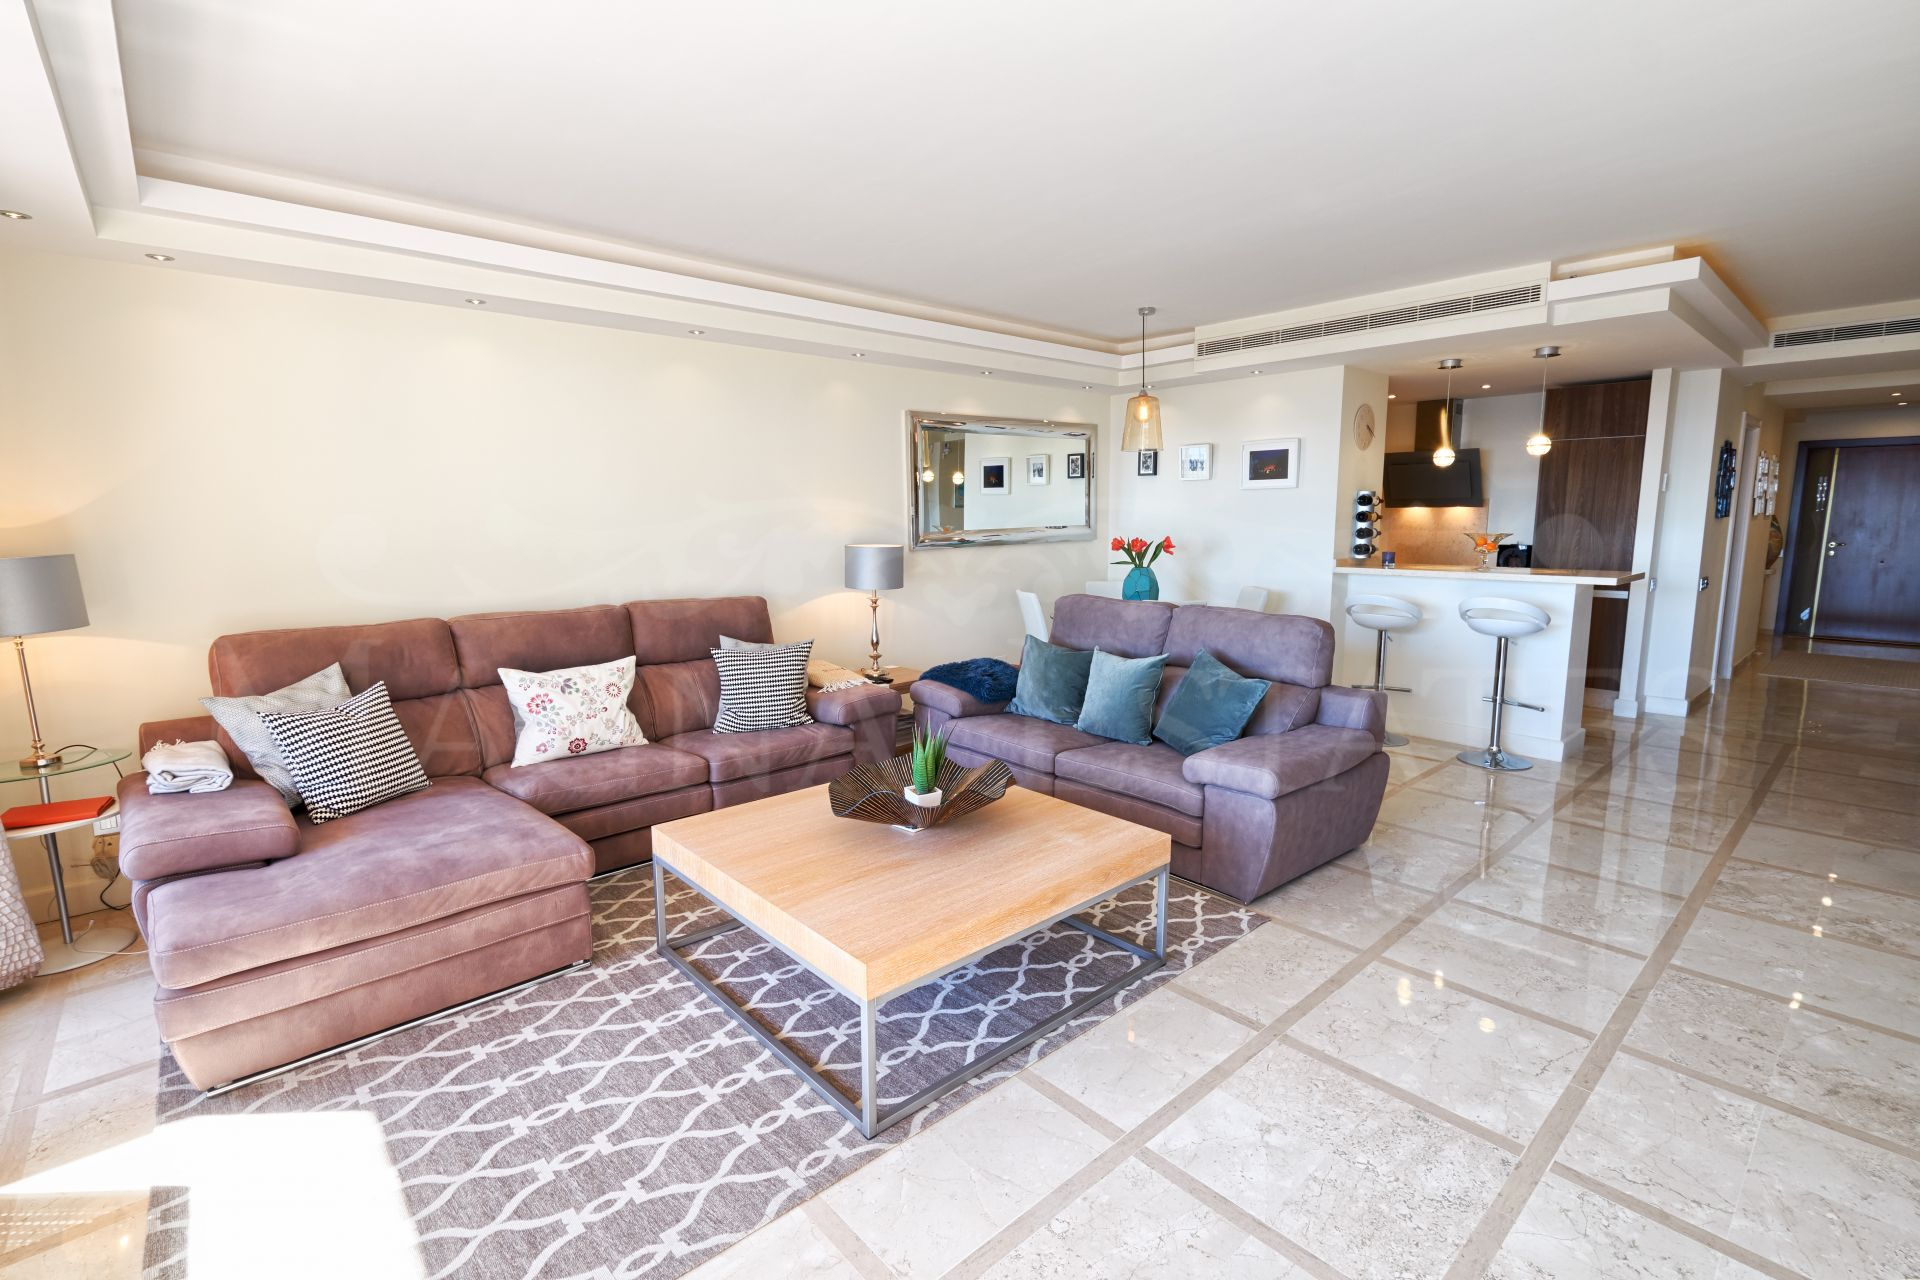 3 bedroom apartment on the beachfront in the new golden mile